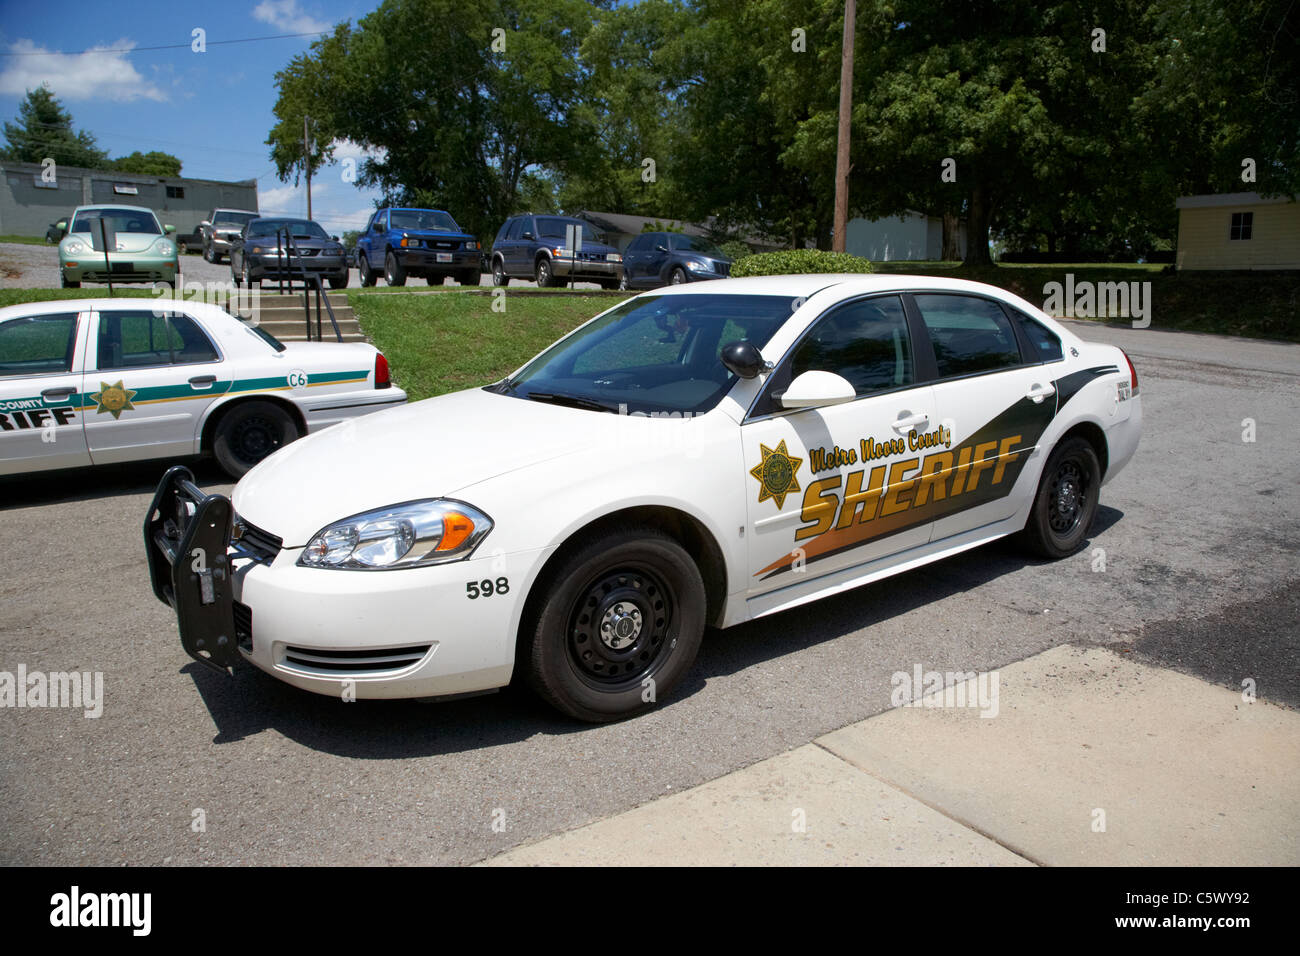 Police sheriff stock photos police sheriff stock images for Musictown motor cars tennessee